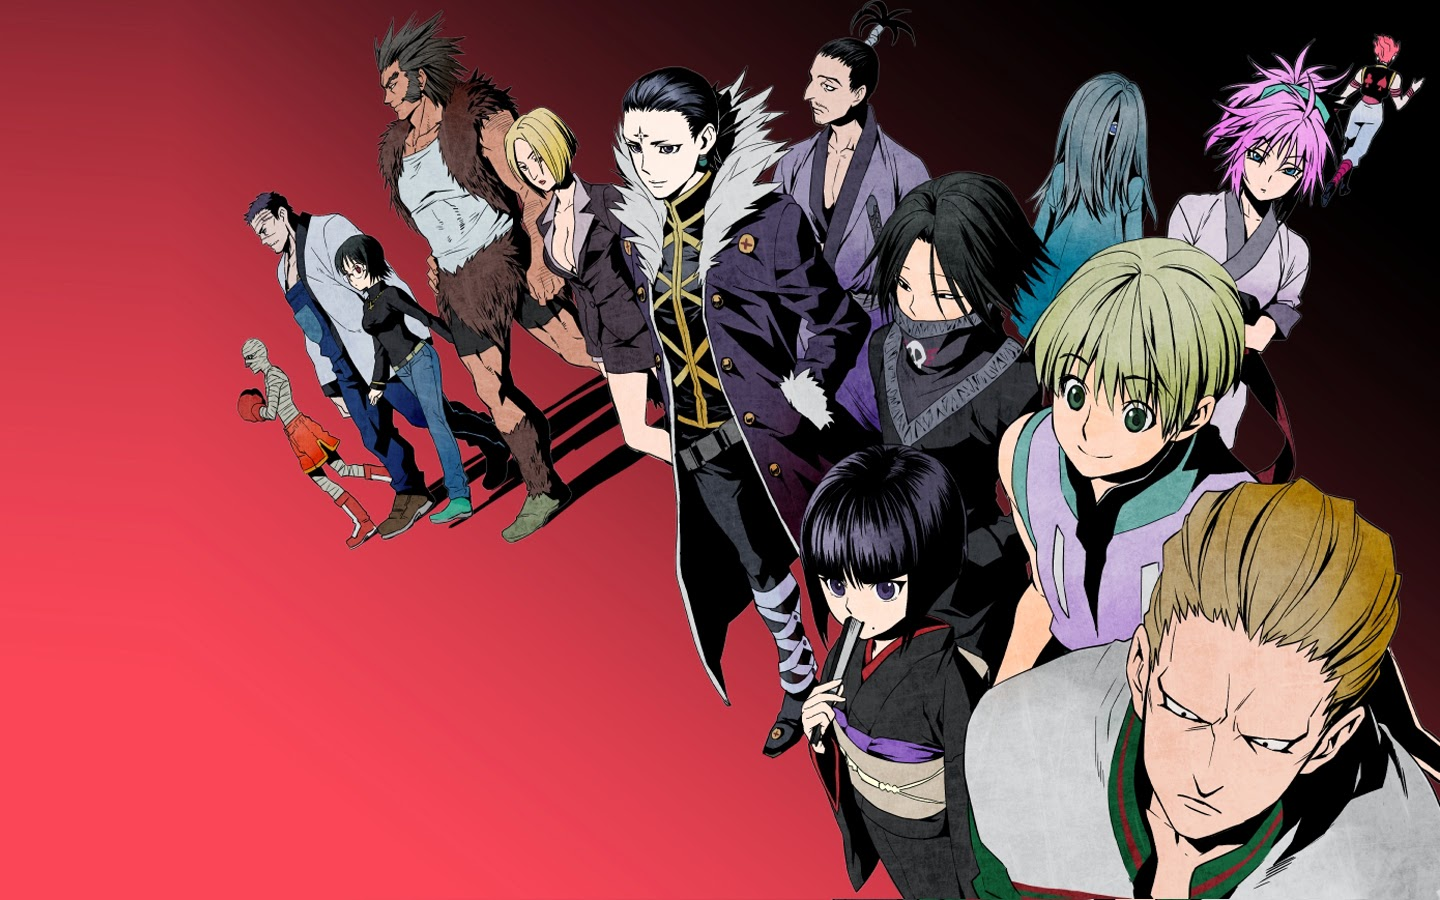 Phantom Troupe Wallpaper Hd Anime Hunter X 2011 1440x900